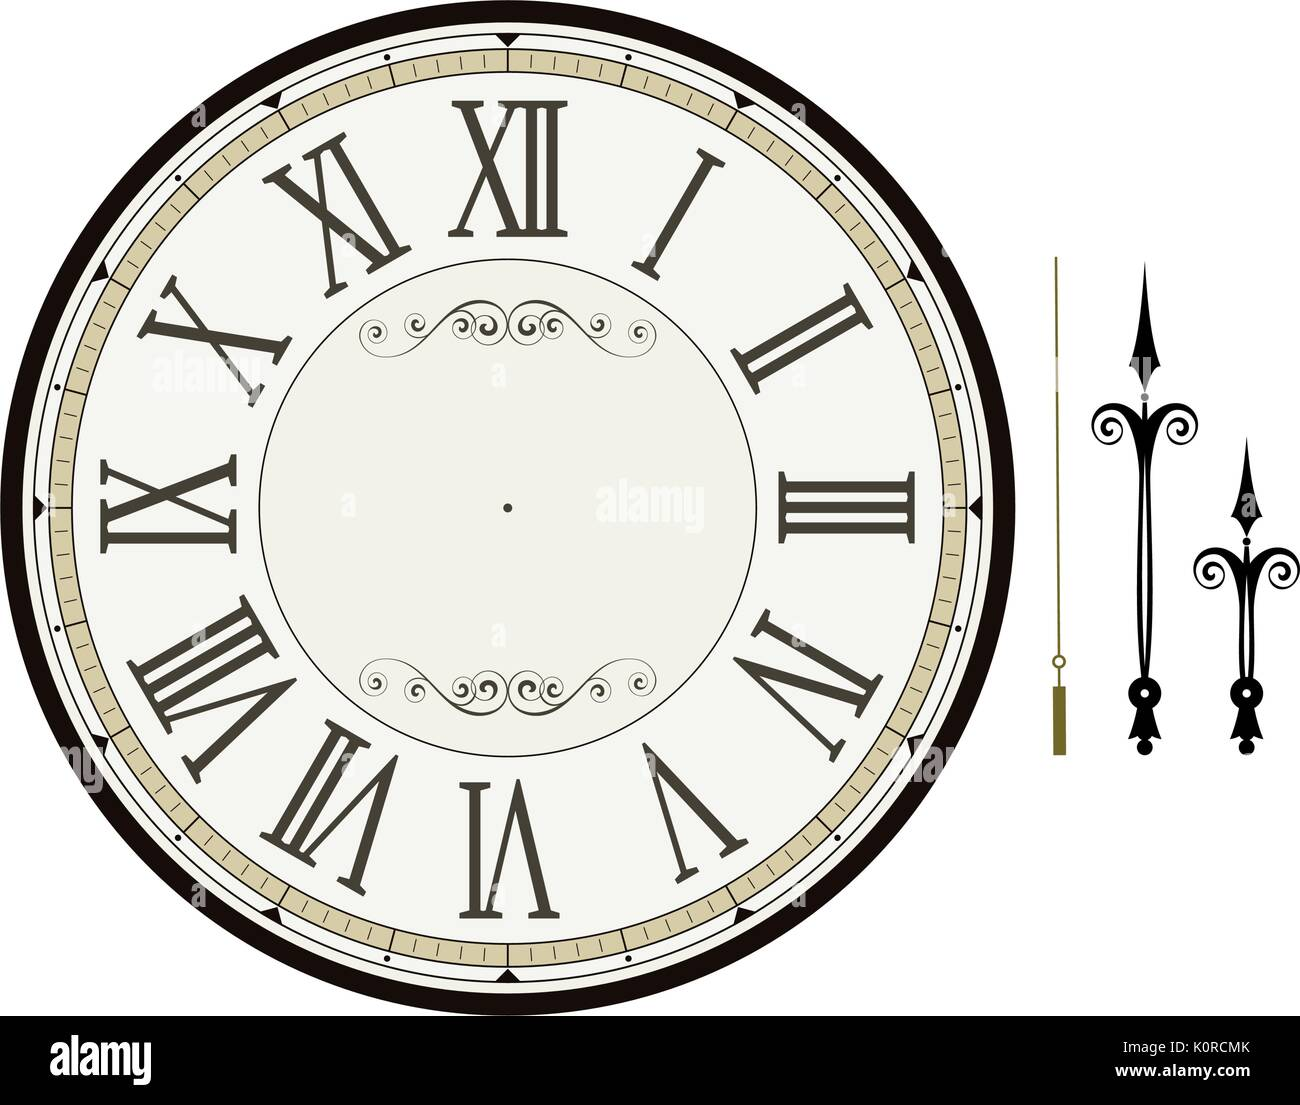 Make Your Own Clock Face Template from c8.alamy.com